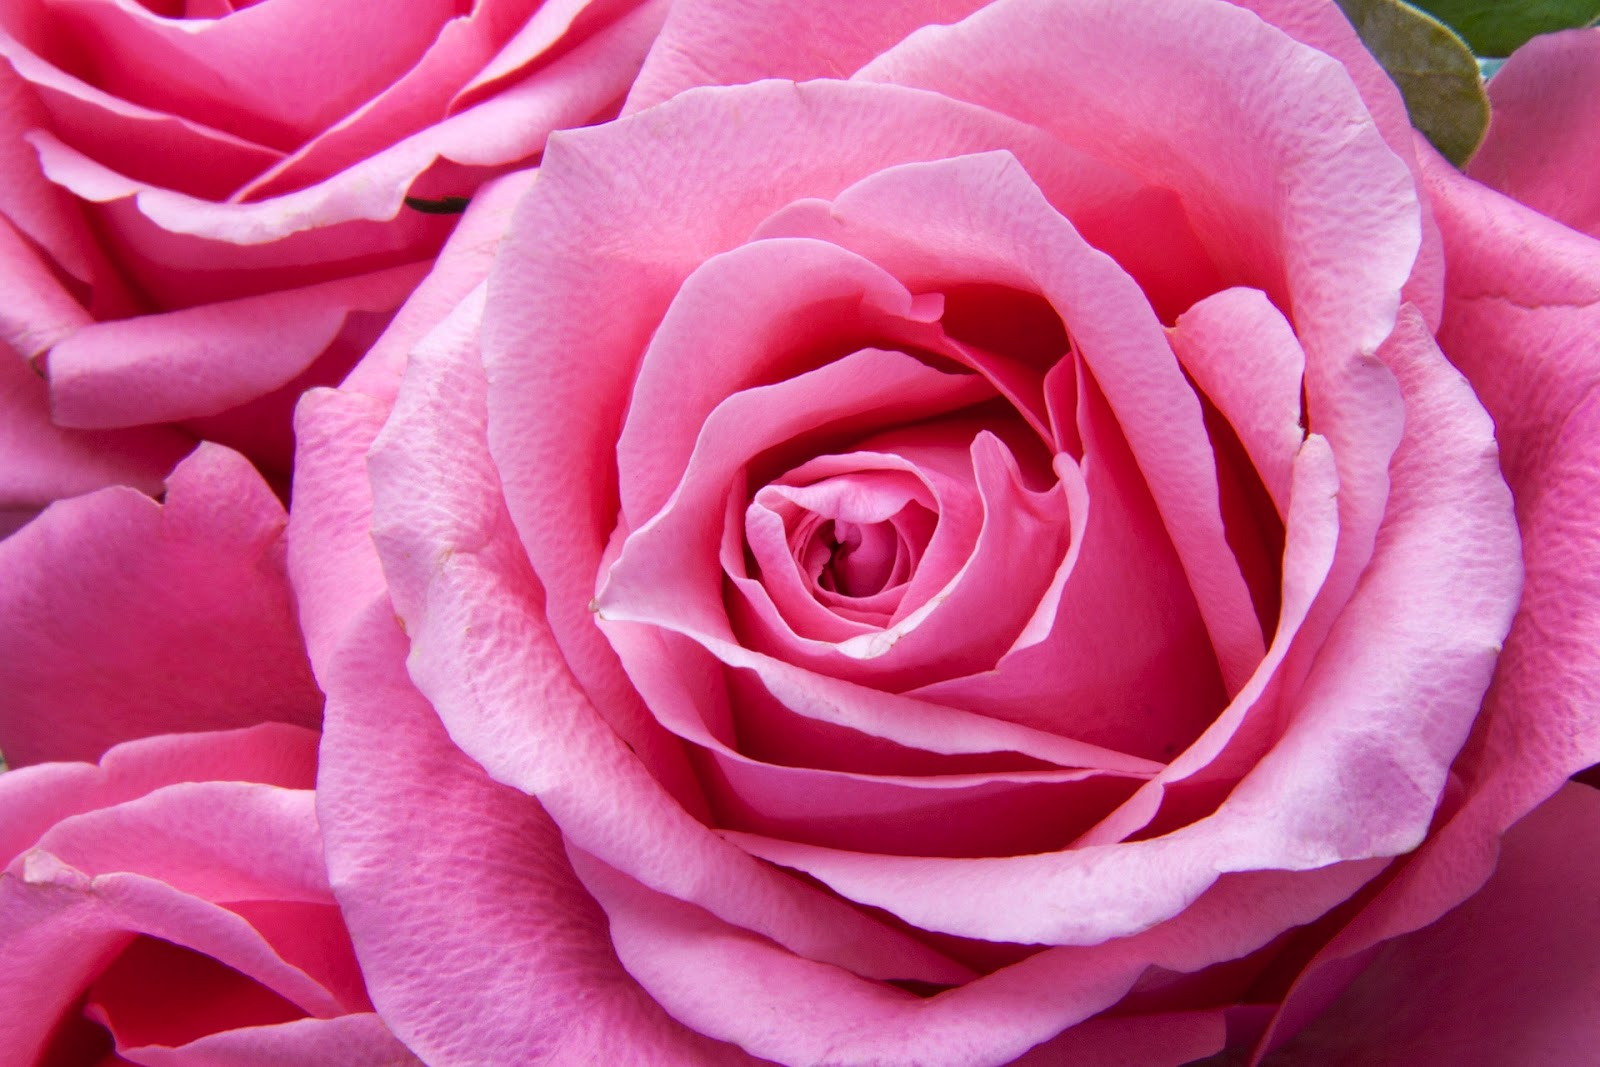 What Is Love? PINK ROSE